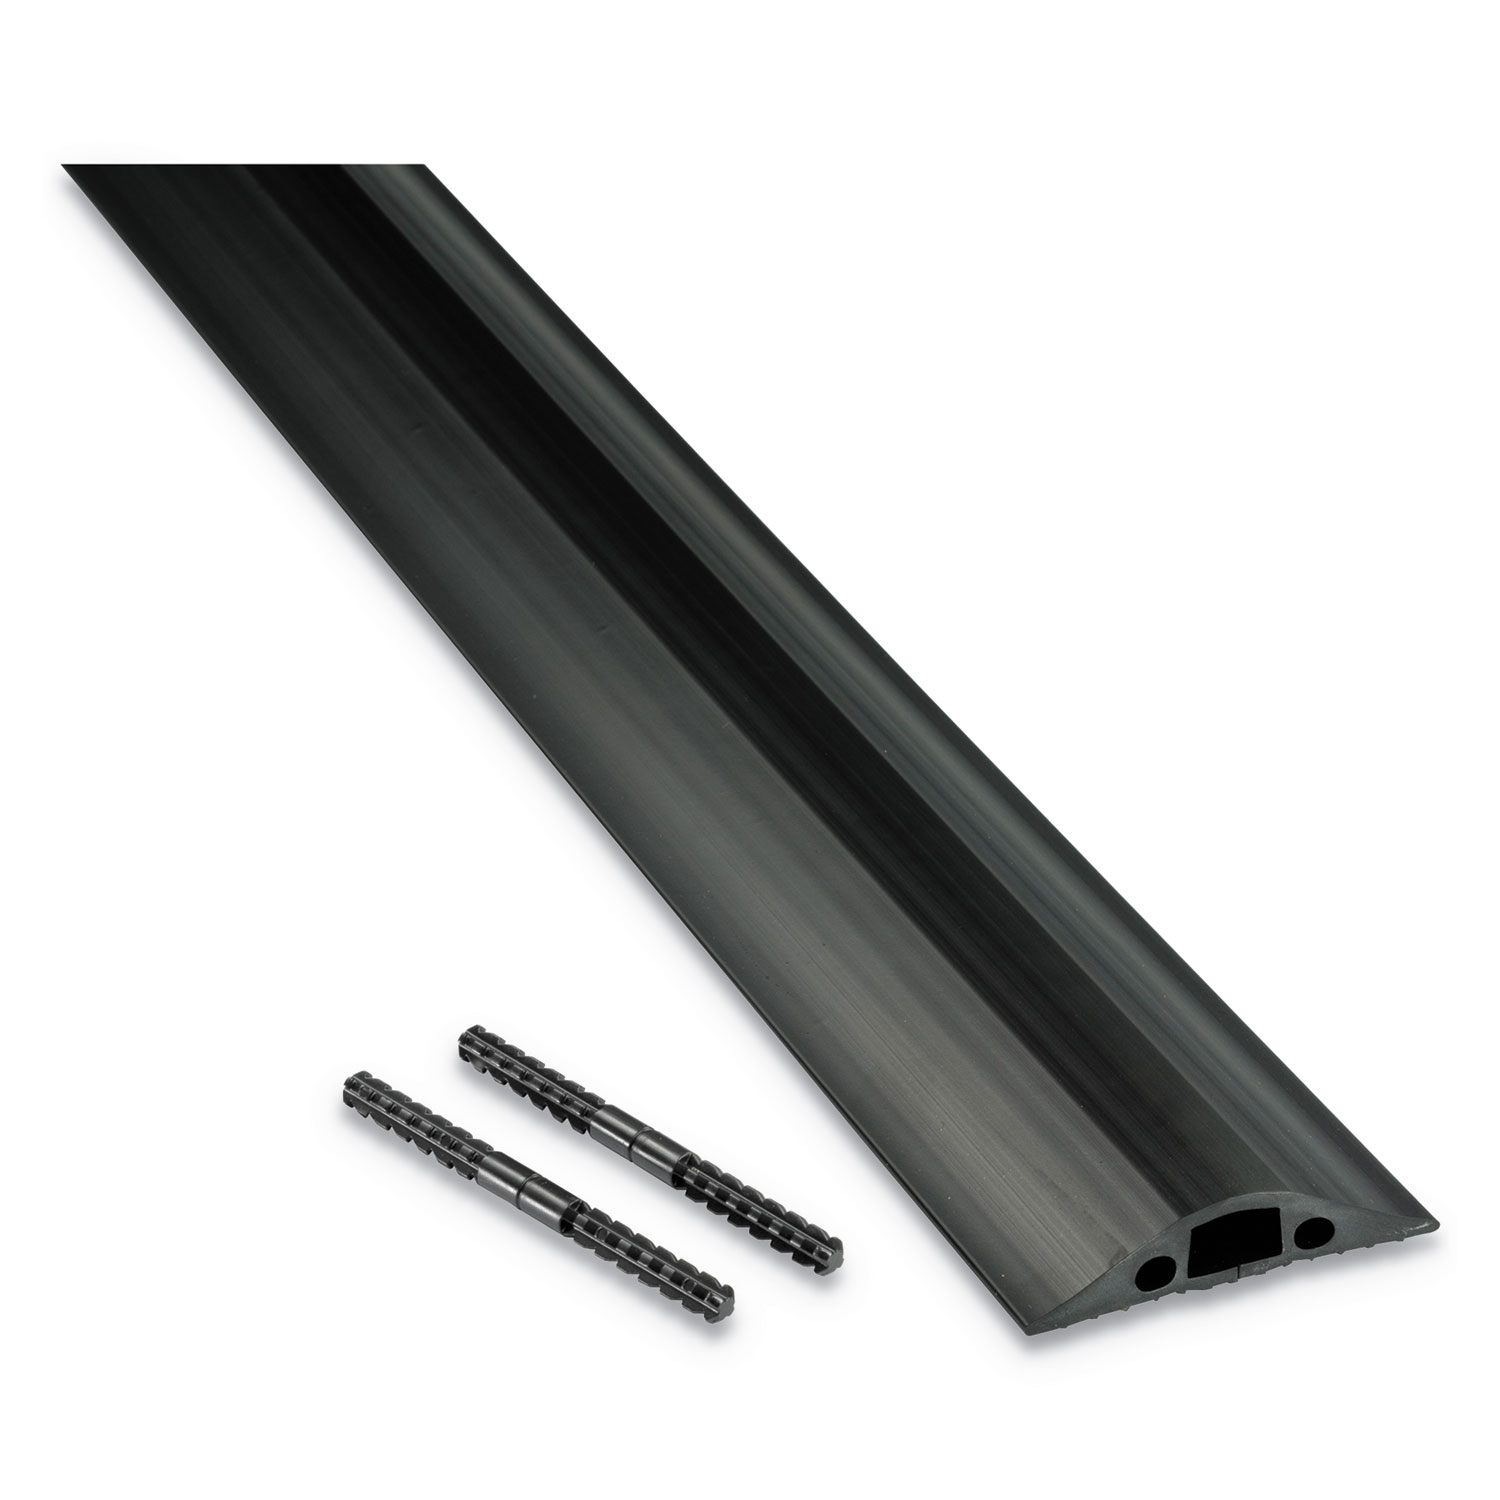 """Medium-Duty Floor Cable Cover, 2.63"""" Wide x 30 ft Long, Black"""